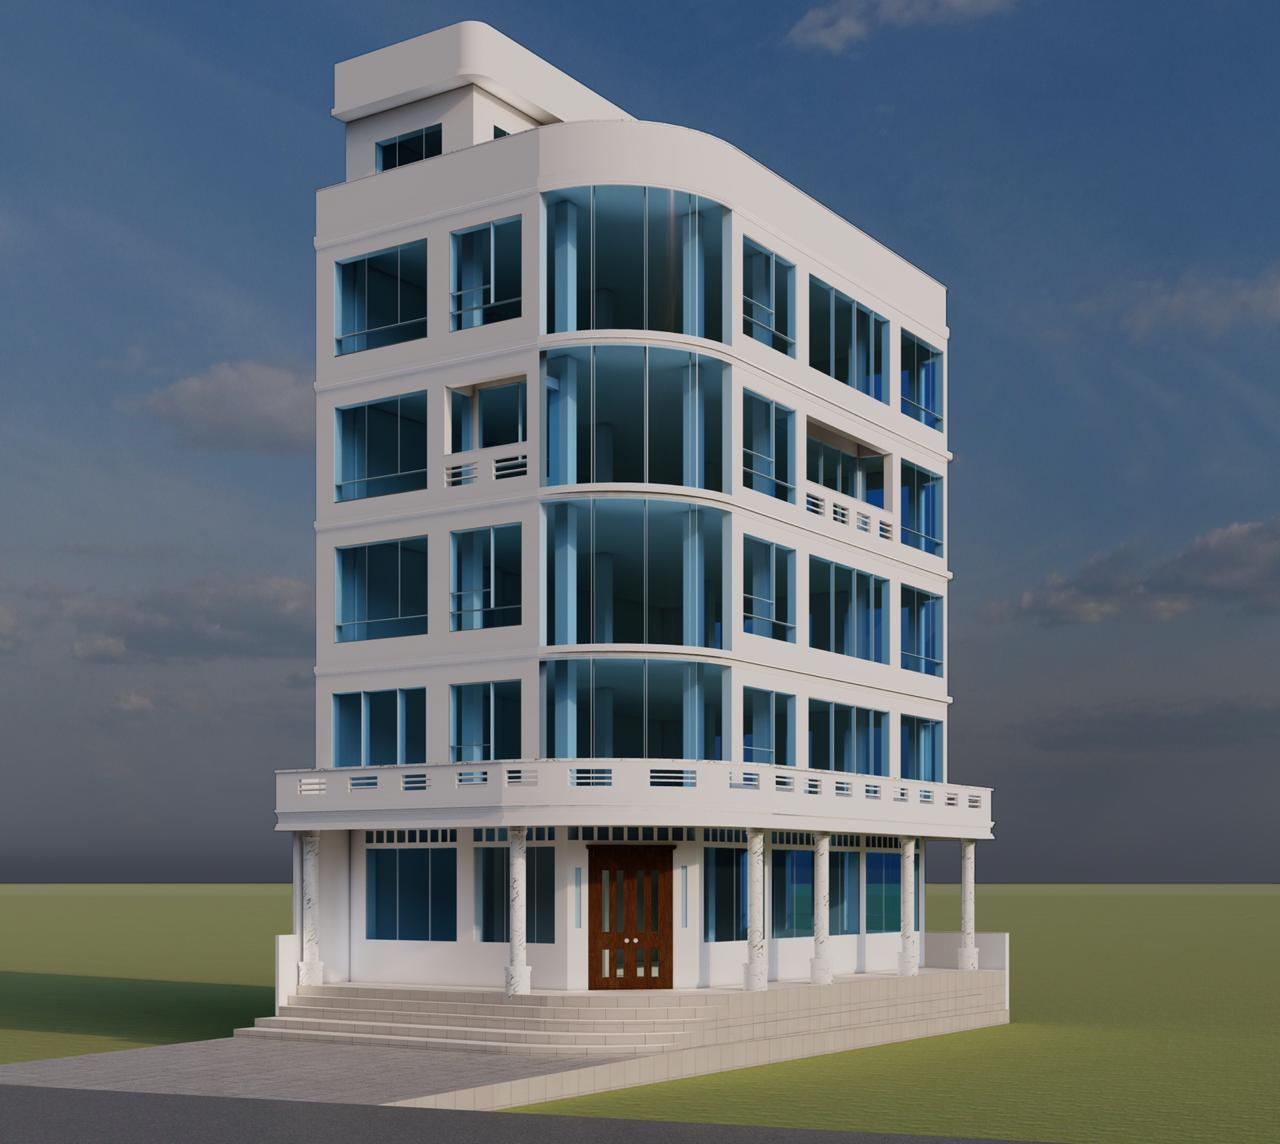 A digital rendering of the Medical Clinic and Mercy Center in Nepal